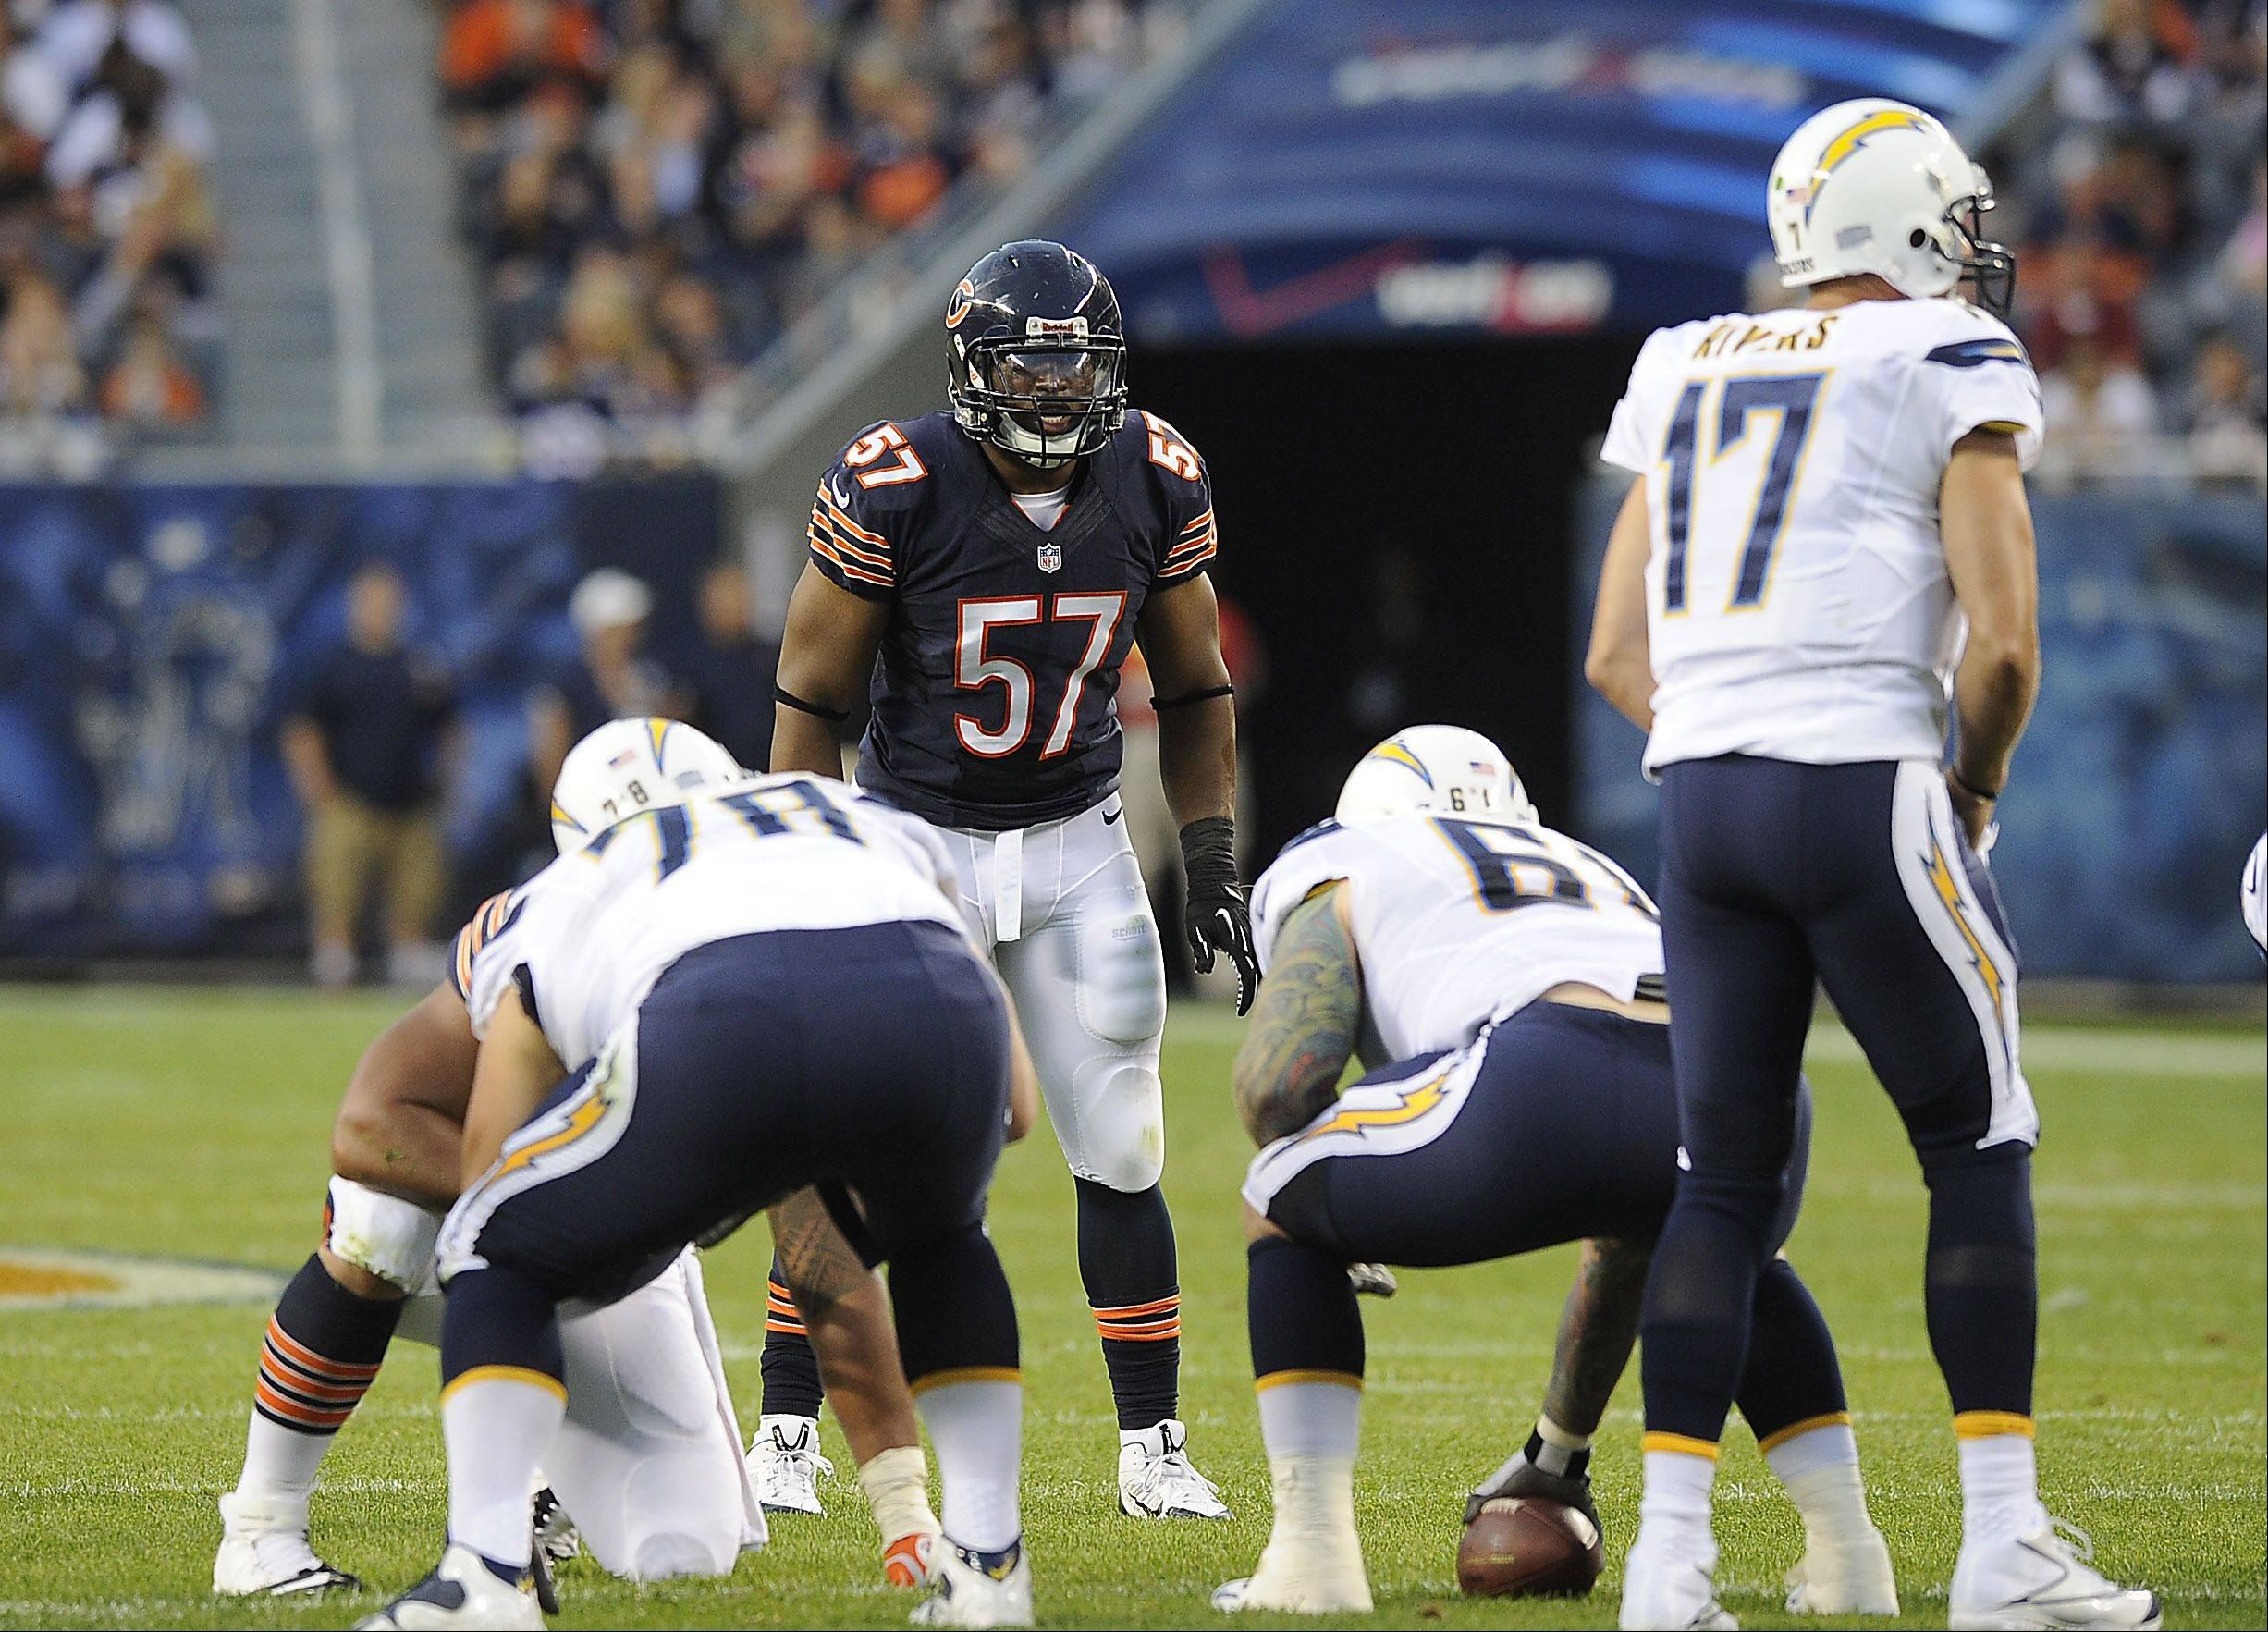 NFL hits back hard on Bears' Bostic